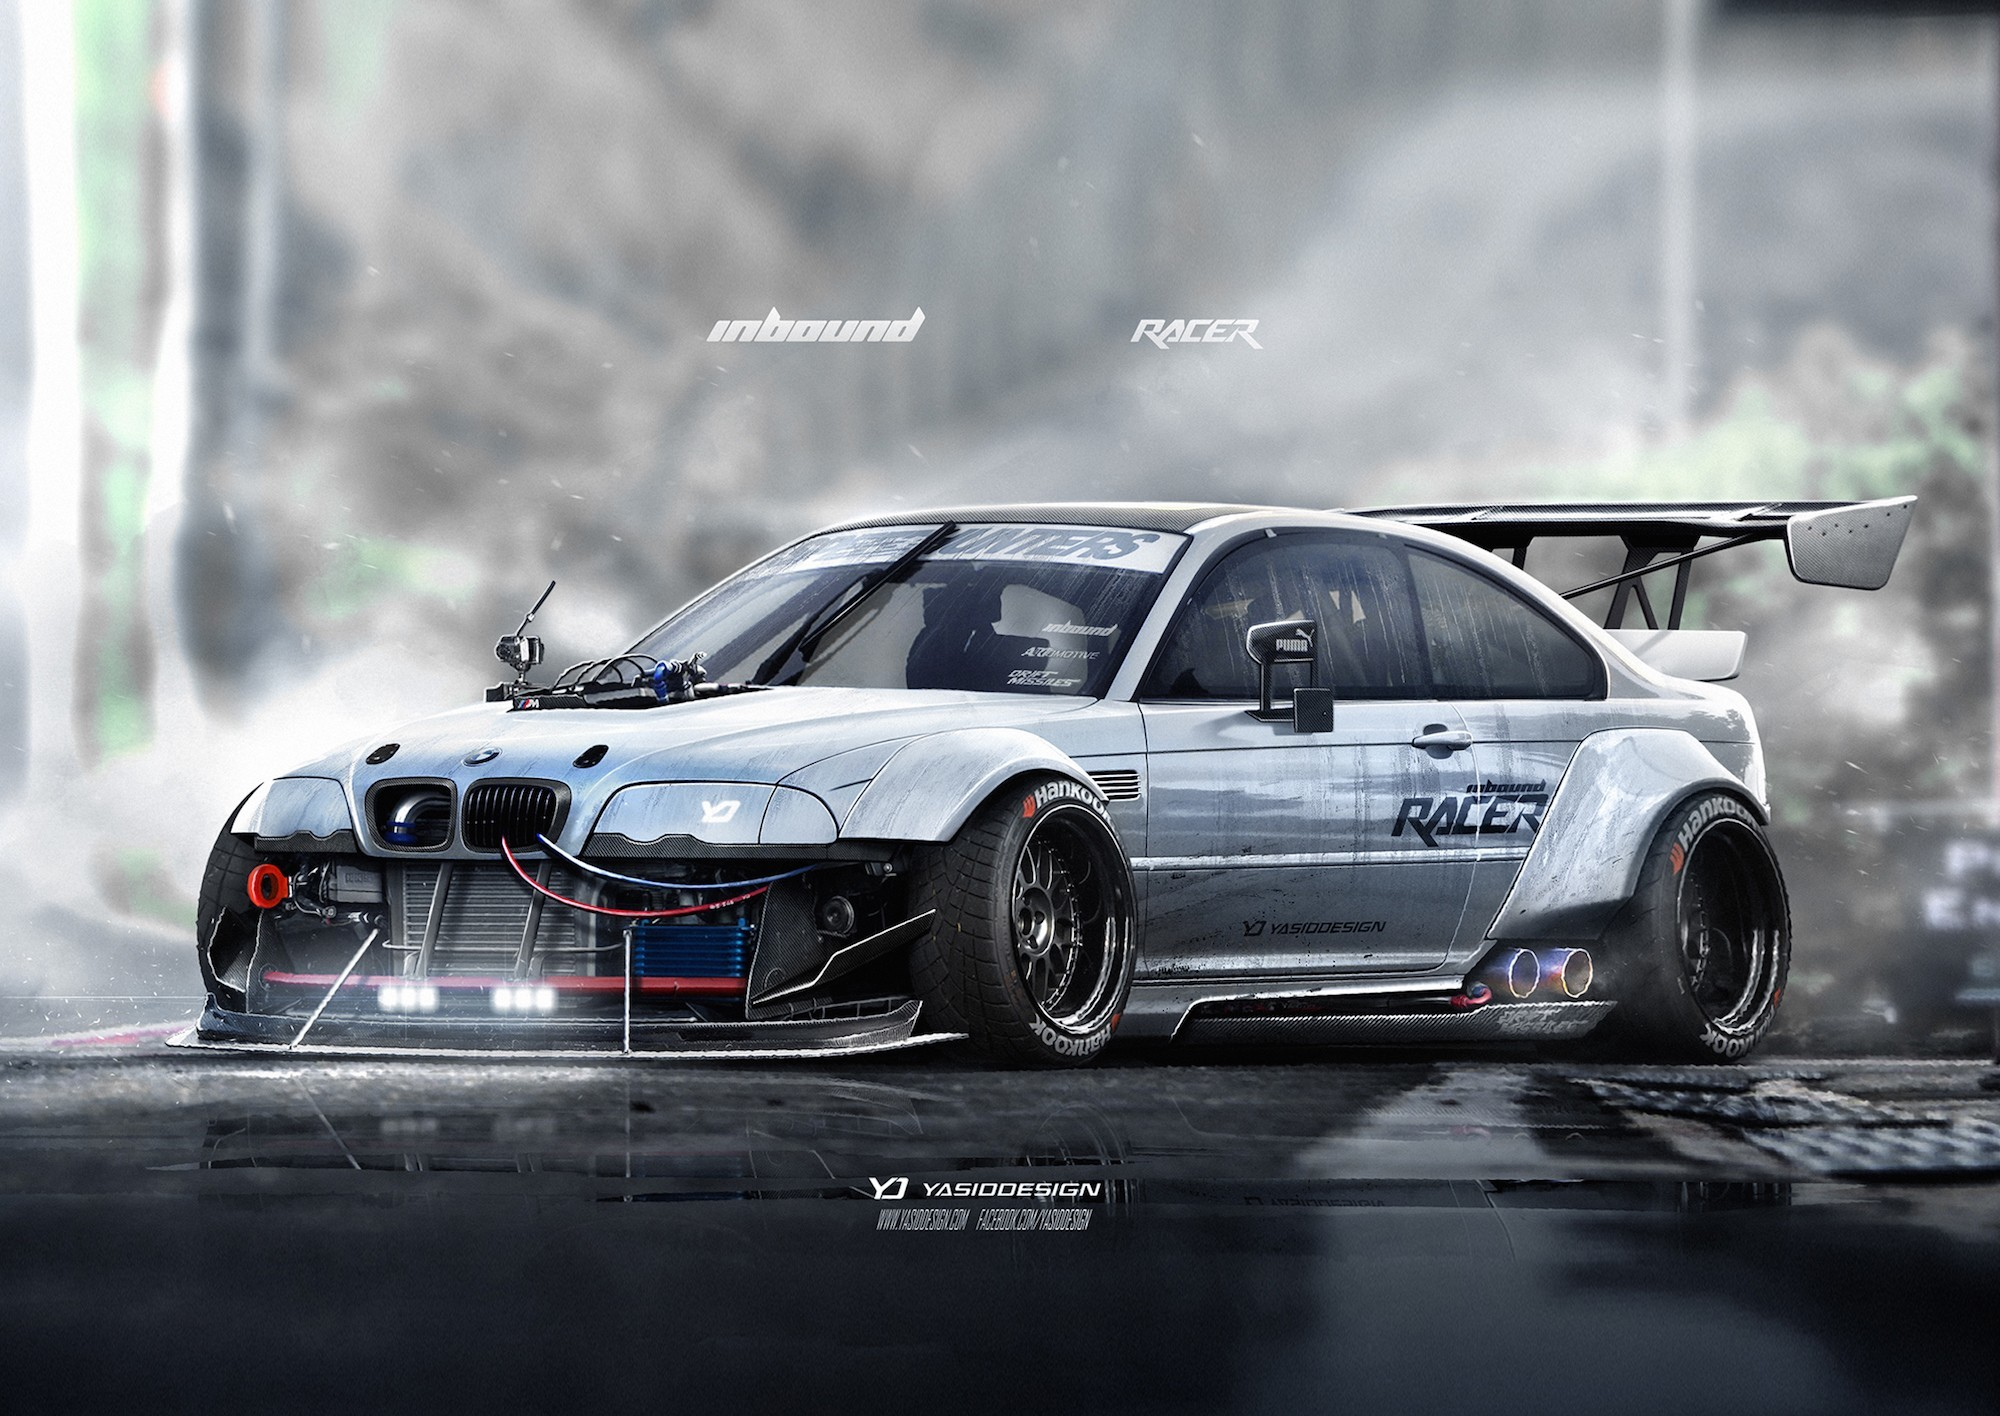 2000x1416 car, YASIDDESIGN, Render, Artwork, BMW, BMW M3 E46, BMW E46, Race Cars  Wallpapers HD / Desktop and Mobile Backgrounds